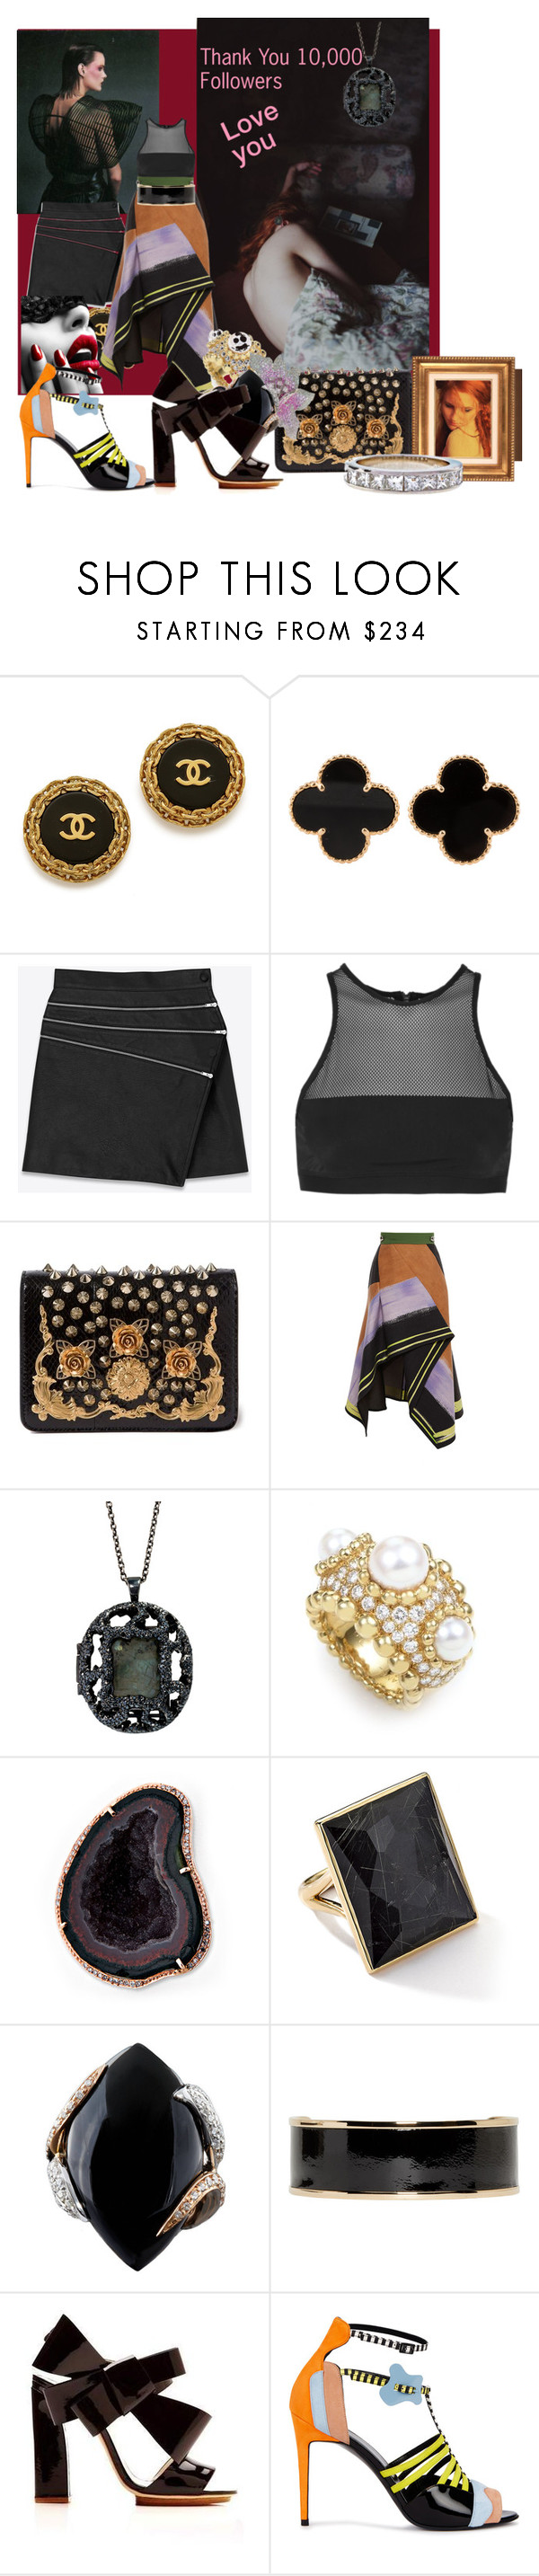 """Thank You 10,000 Followers"" by aciellelacie ❤ liked on Polyvore featuring Van Cleef & Arpels, Yves Saint Laurent, T By Alexander Wang, Dolce&Gabbana, Peter Pilotto, Antonym, Chanel, Ippolita, Luca Carati and Balmain"